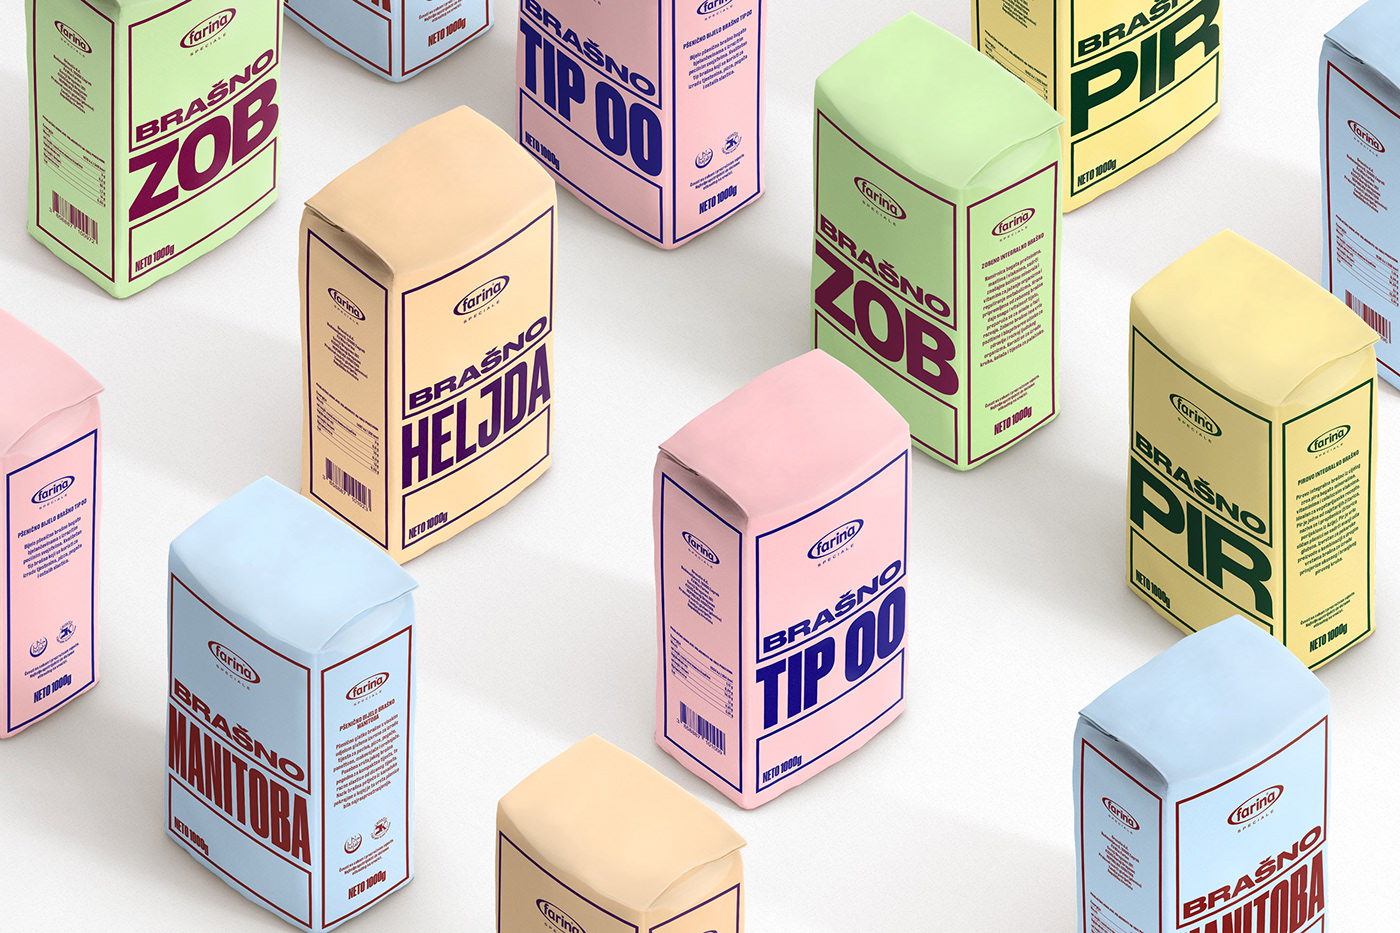 colors farina flat flour Packaging pastel Speciale typography